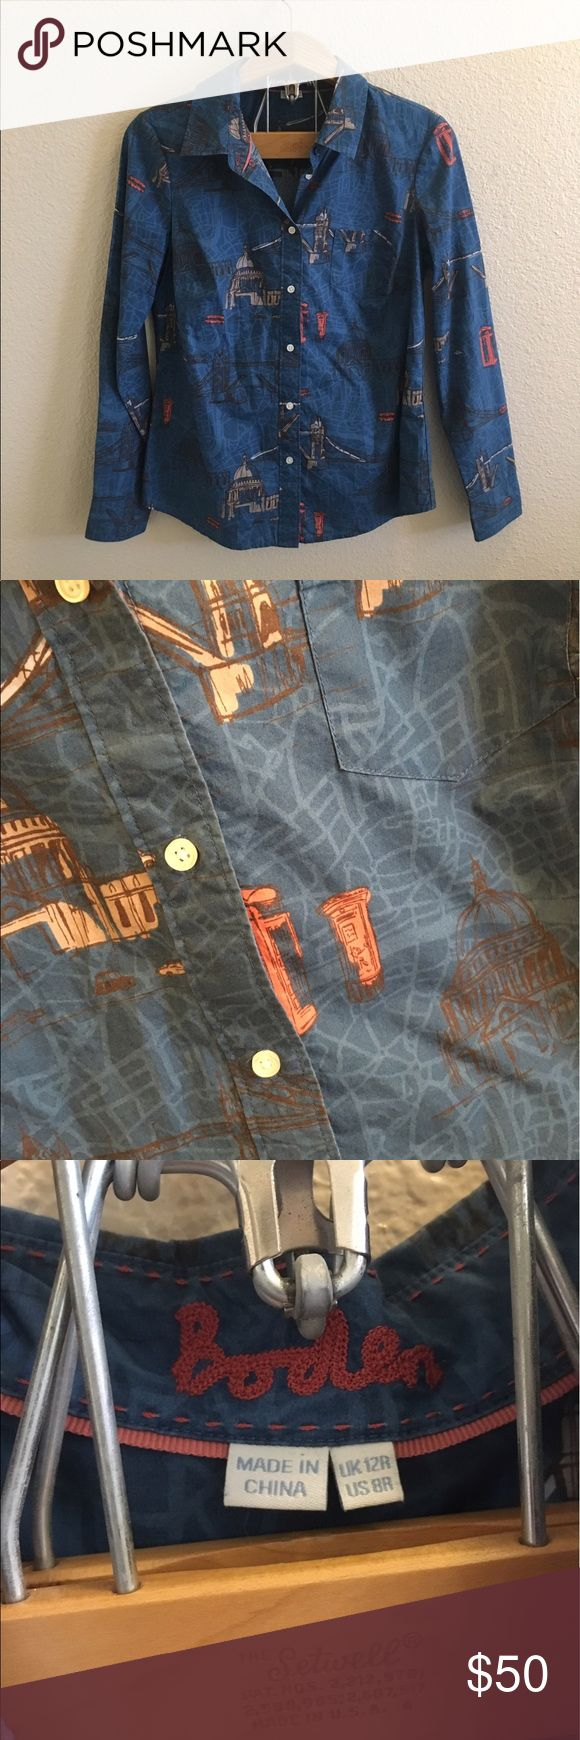 Boden London Landscapes Button Down Top Size 8 R Button Down shirt by Boden. London landscapes print all over. In perfect condition, no flaws! Items stored in a smoke free, pet free environment. I ship daily, excluding Sundays and holidays. Open to offers; bundles discounted! Boden Tops Button Down Shirts